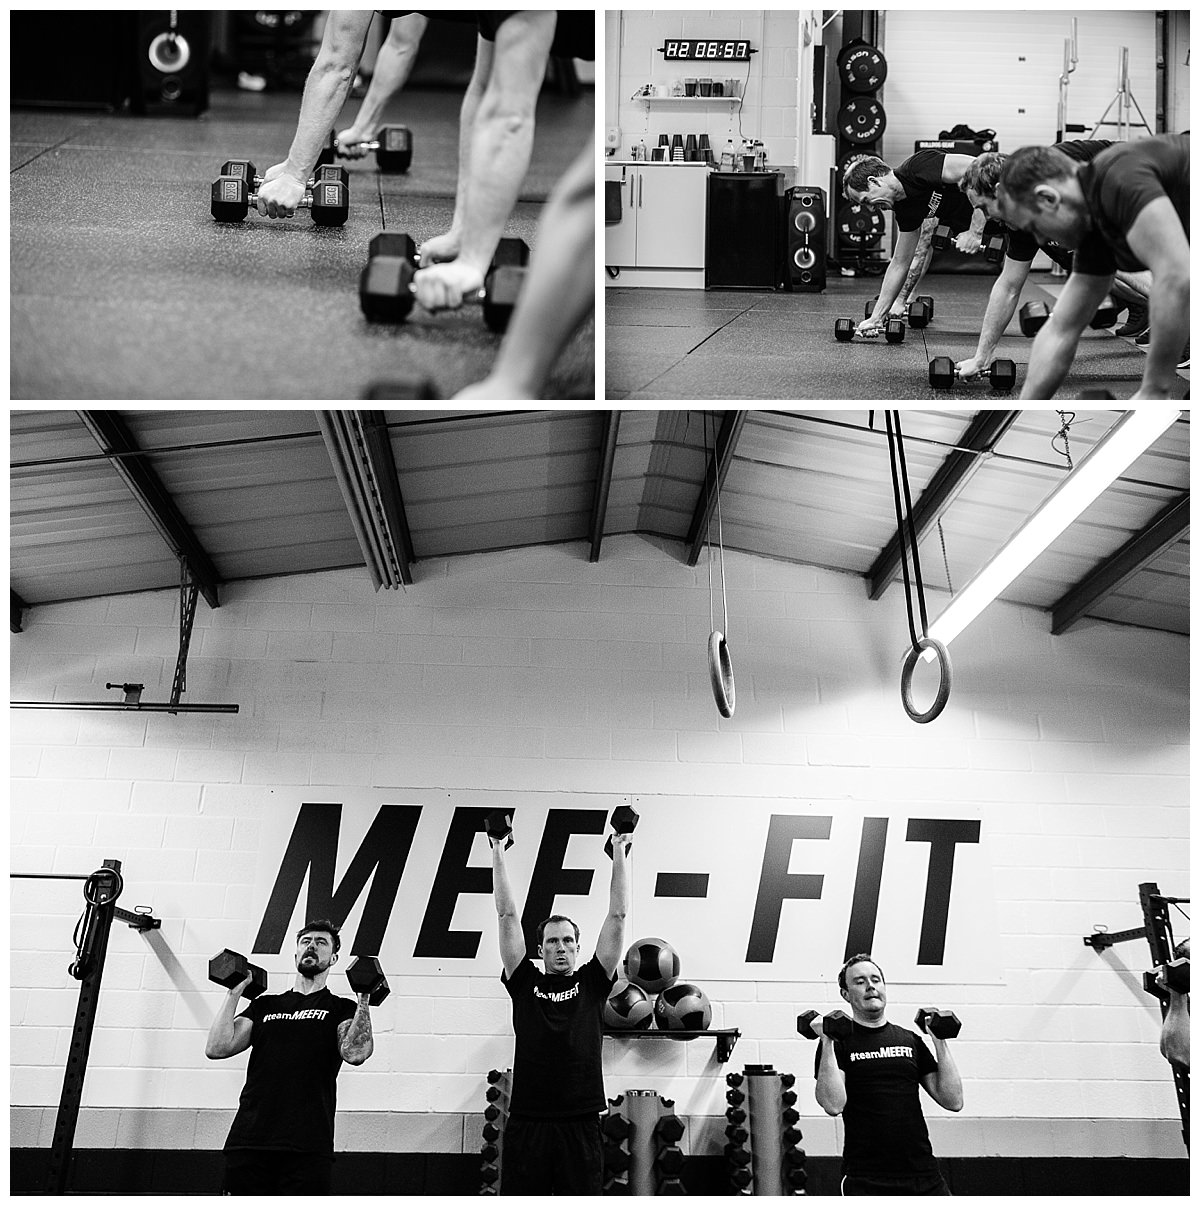 close up shots of men using weights and wide angle os men with dumb bells in the air - gyms in whitchuch, shropshire